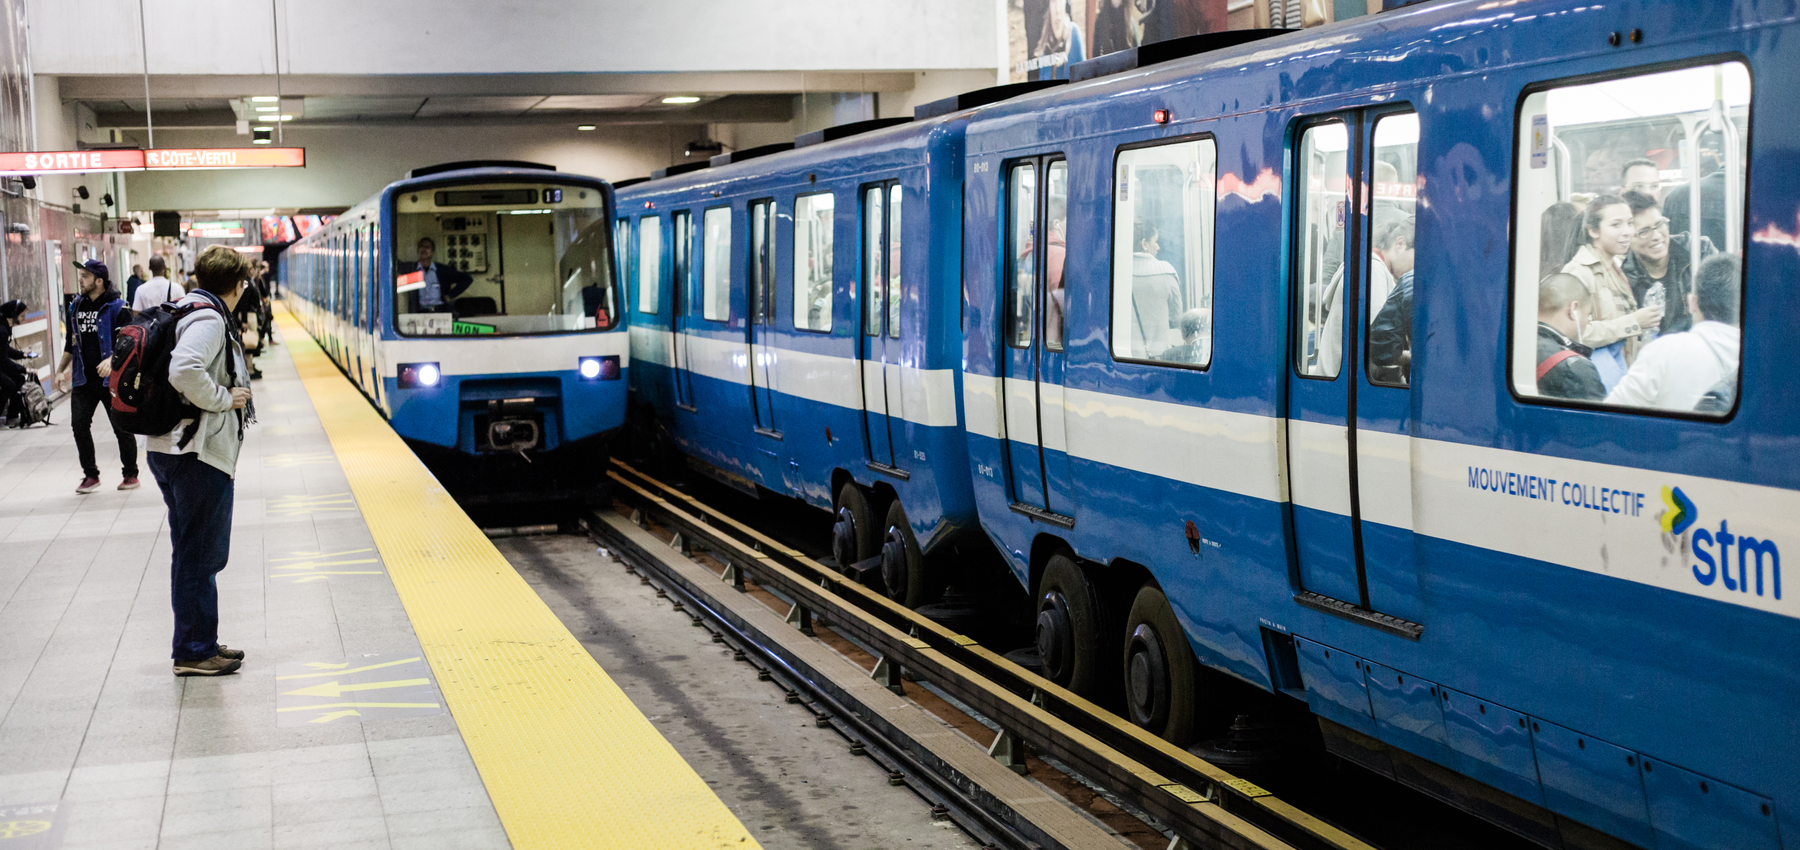 How to use public transportation in Montreal